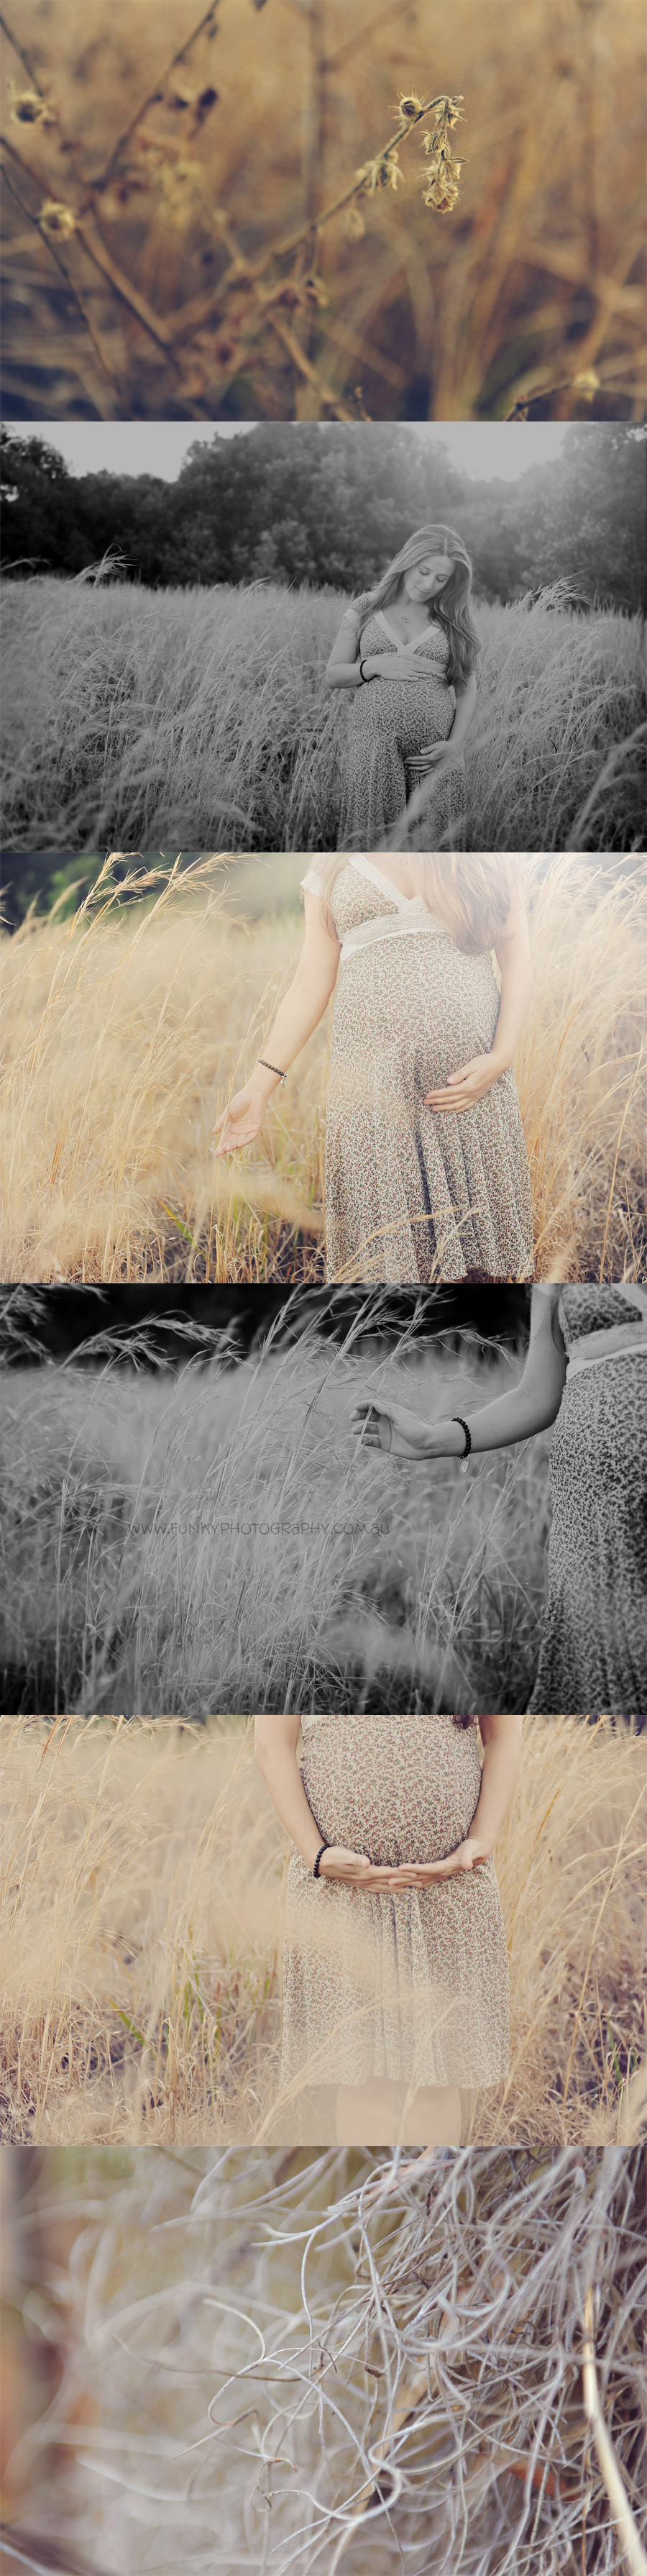 pregnant girl in a field